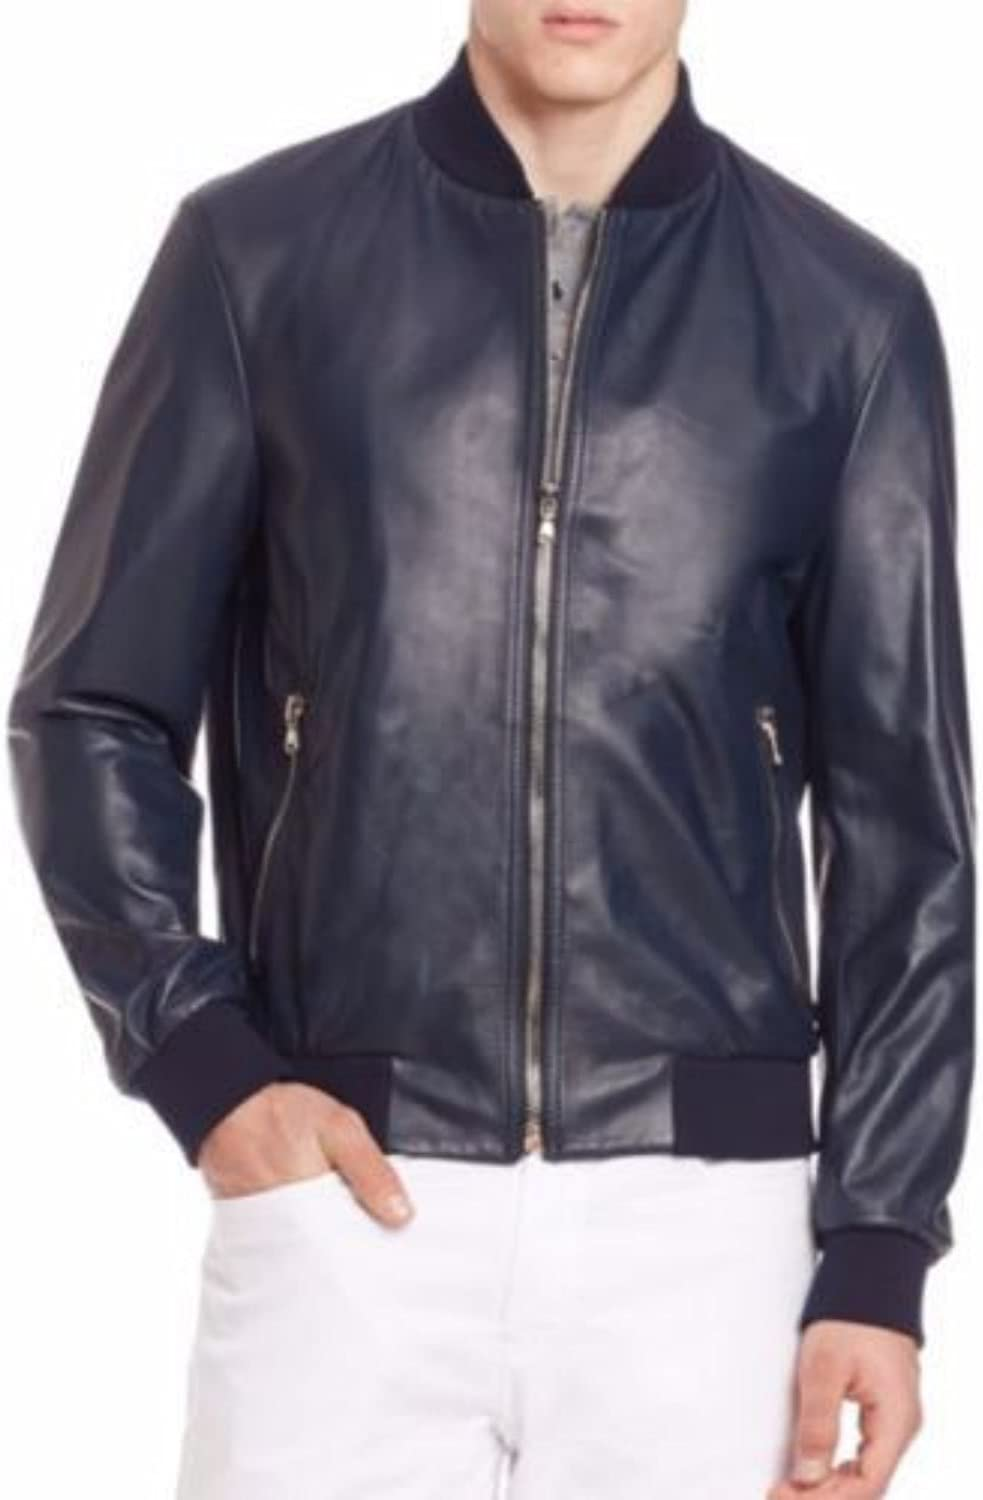 brandMe Mens Genuine Leather Pure Lambskin Biker Jacket MM342